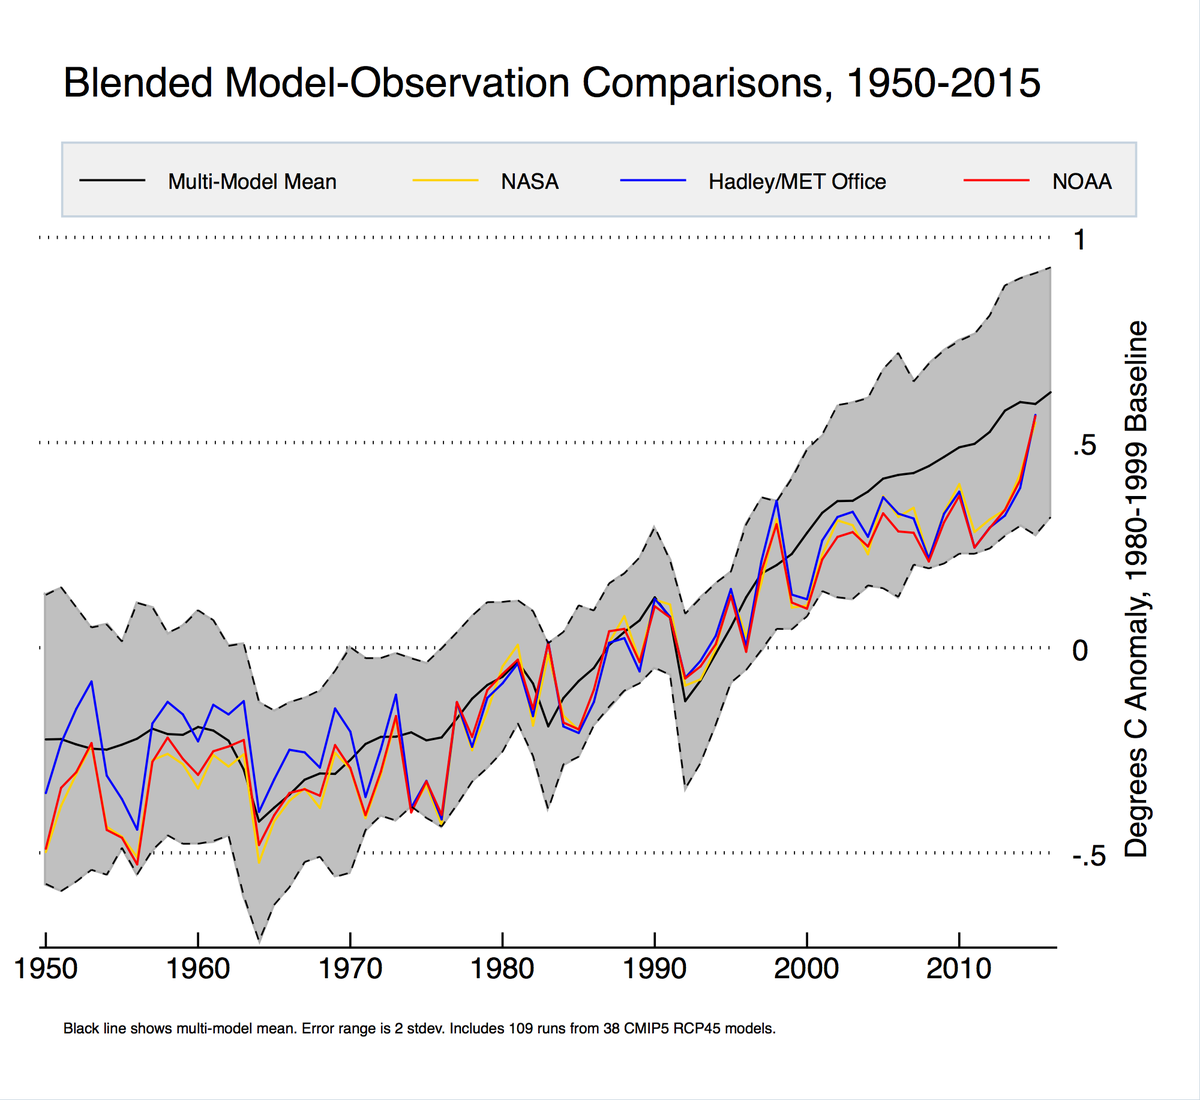 Blended Model-Observation Comparison 1950-2015